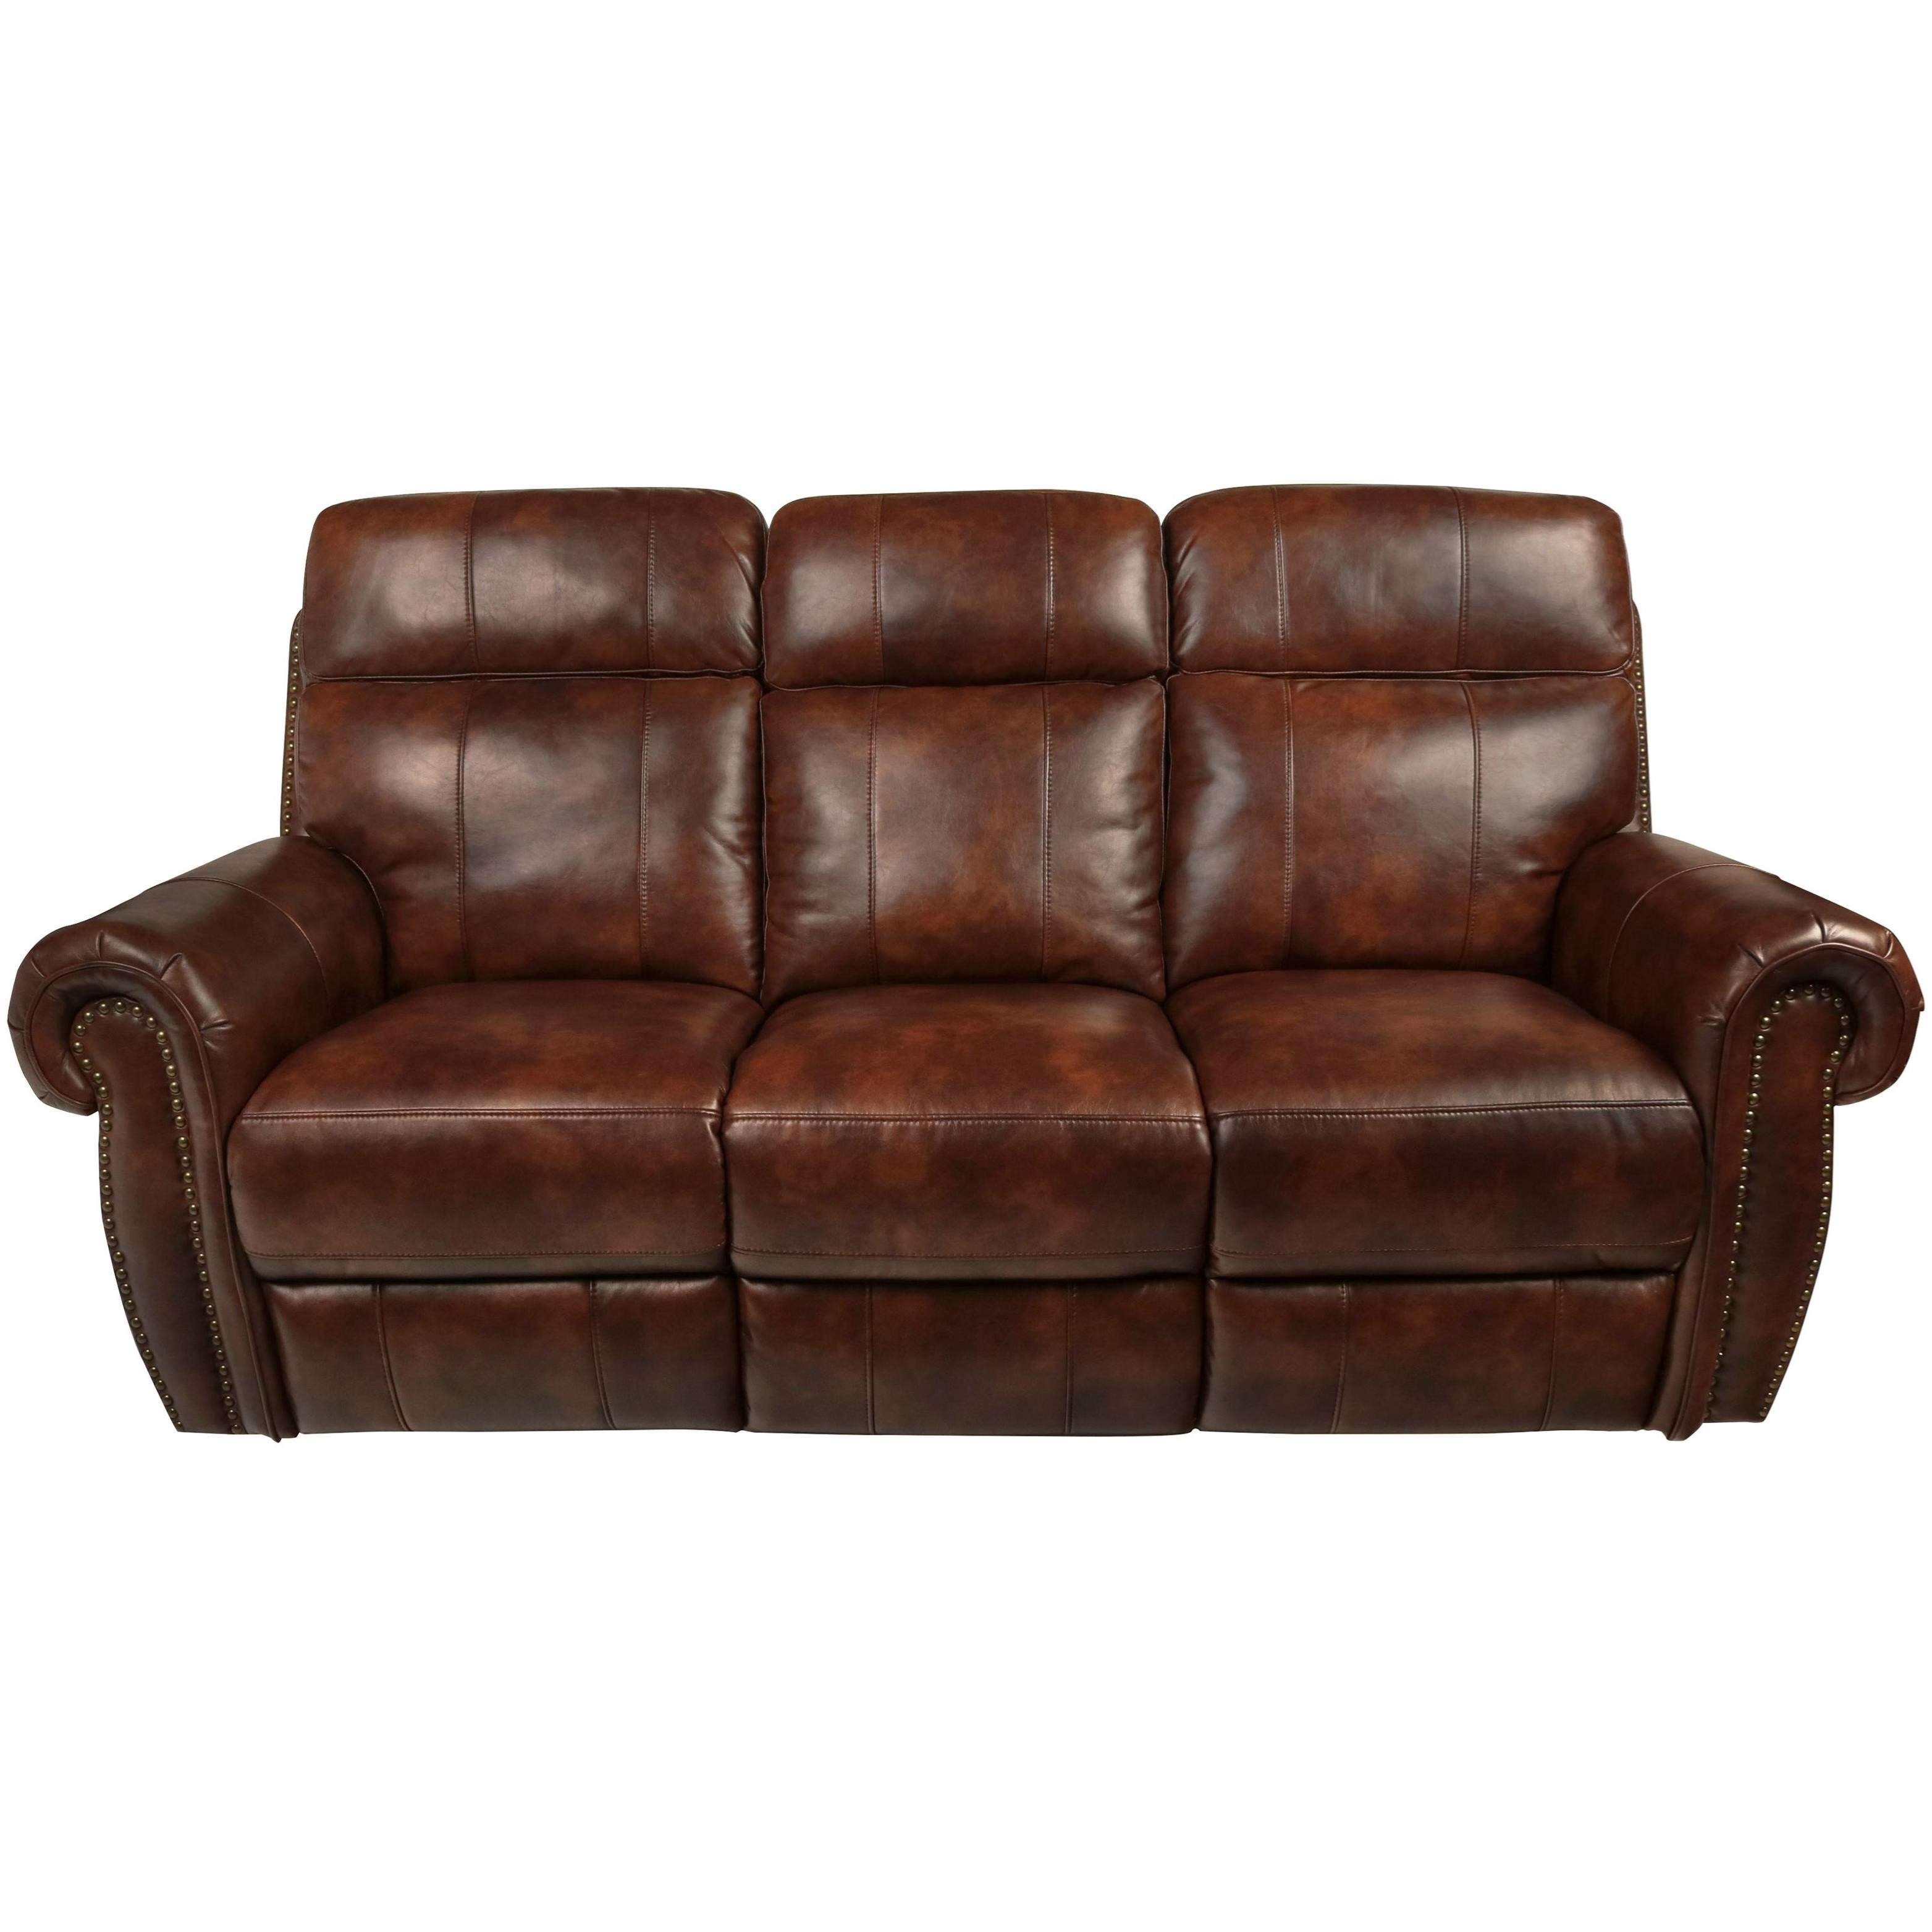 Roycroft Power Reclining Sofa by New Classic at Rife's Home Furniture